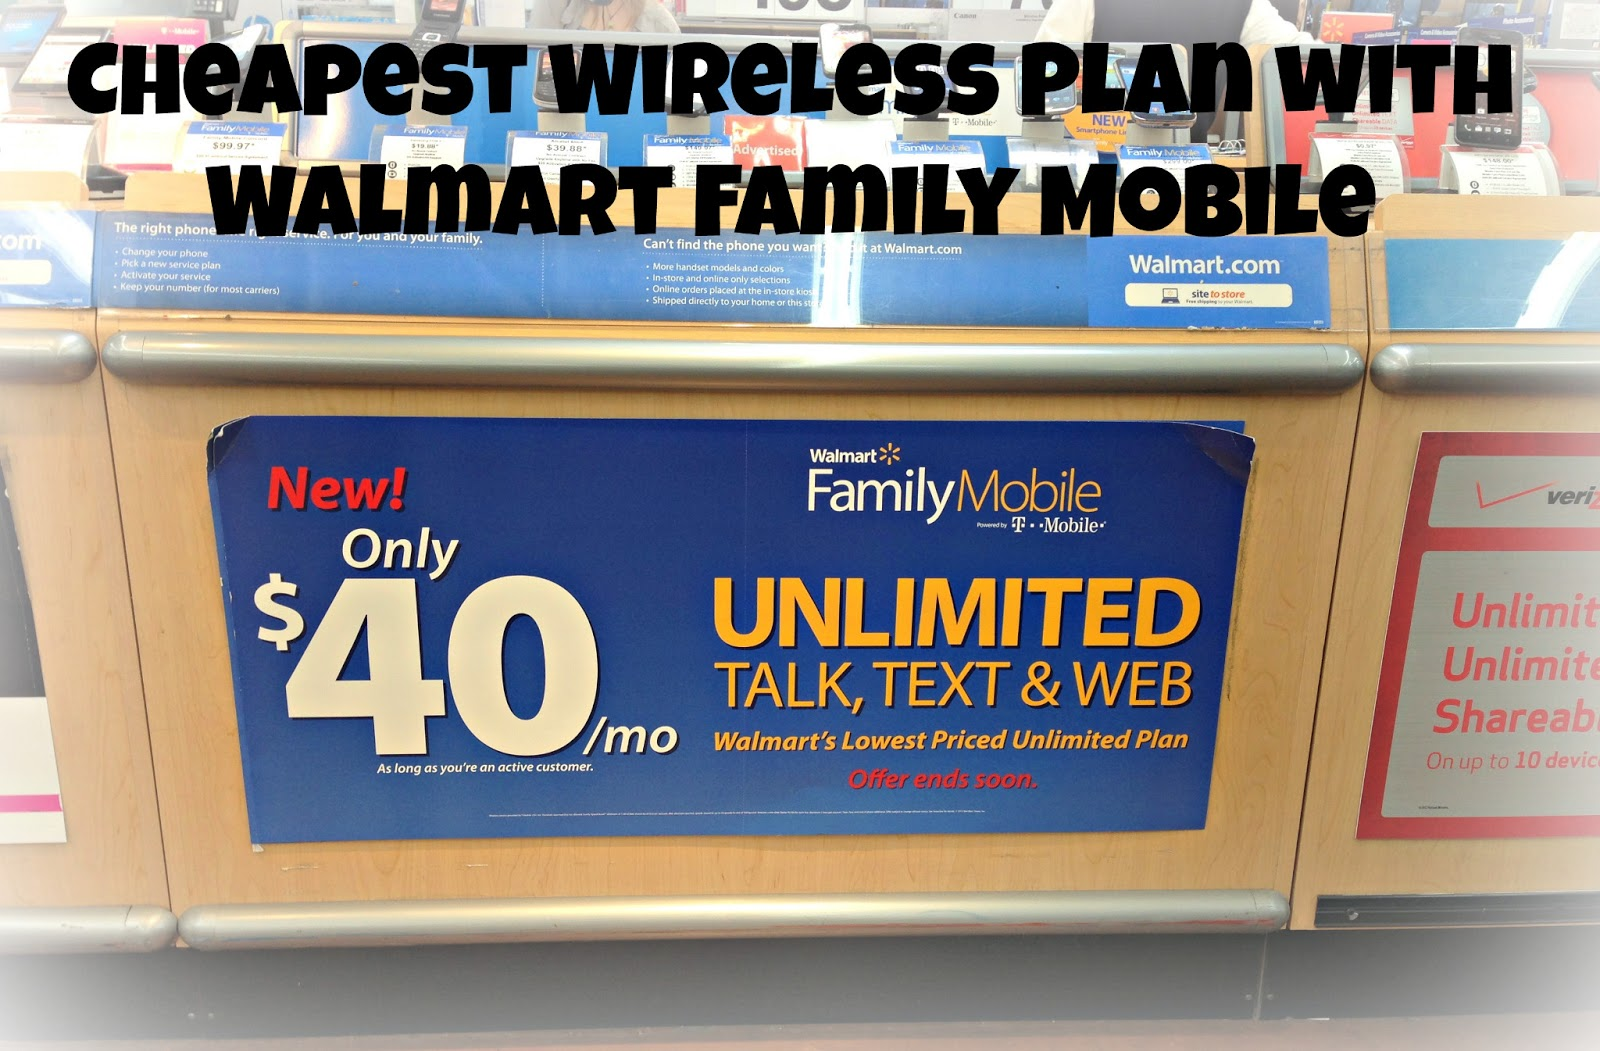 Cheap Wireless Plan with Walmart Family Mobile - Guide For Moms